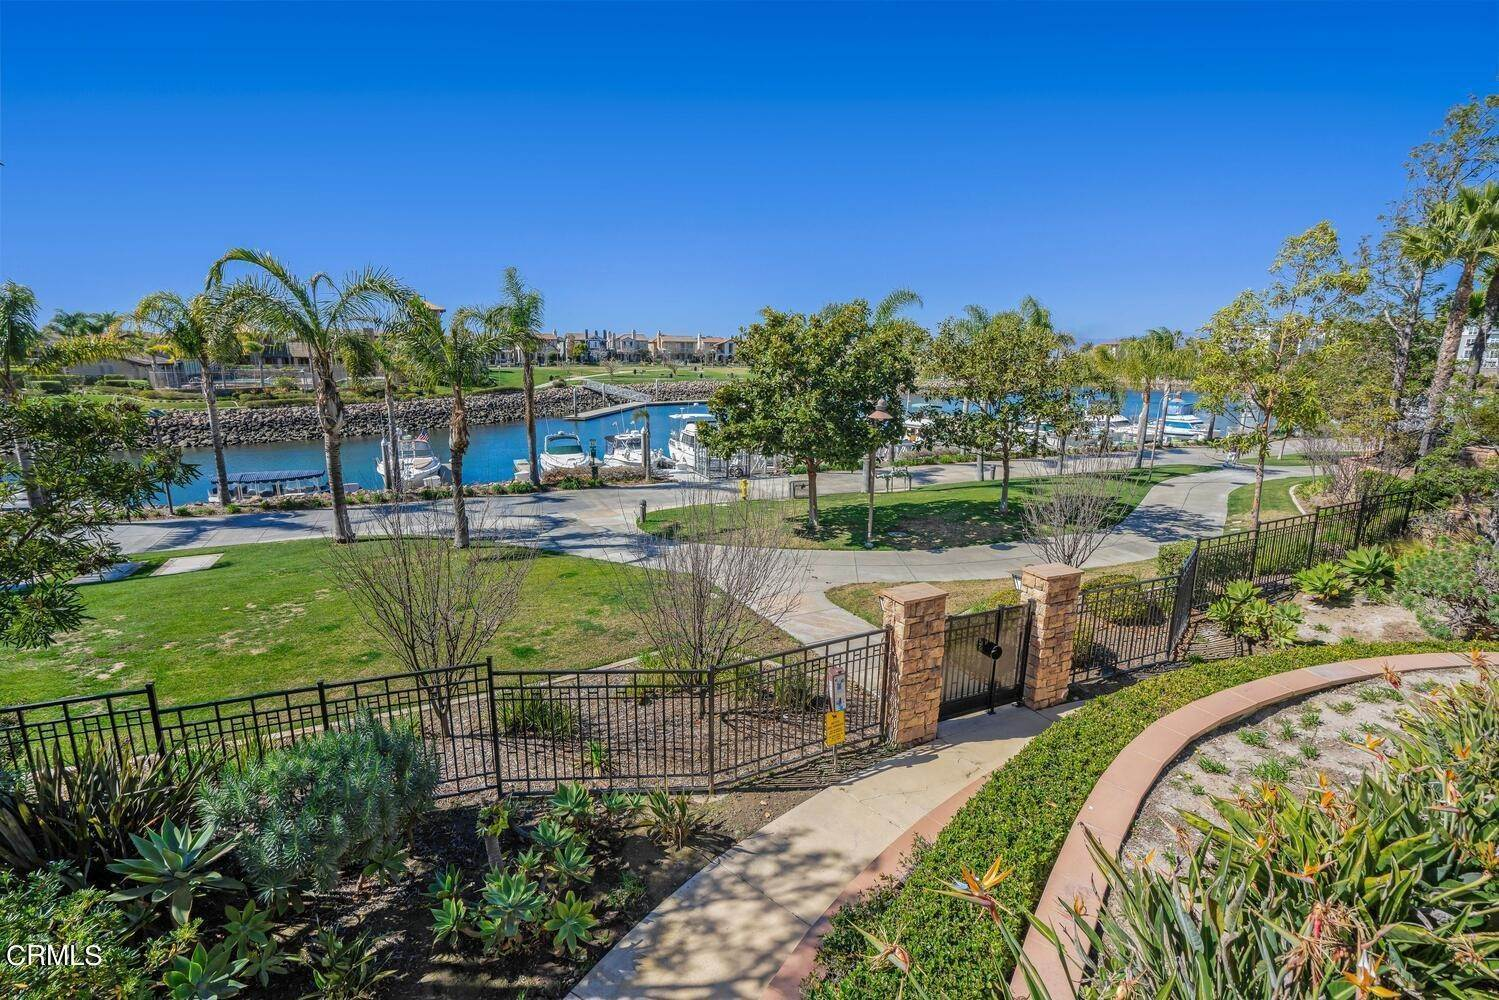 28. Condominiums for Sale at 1405 Windshore Way Oxnard, California 93035 United States